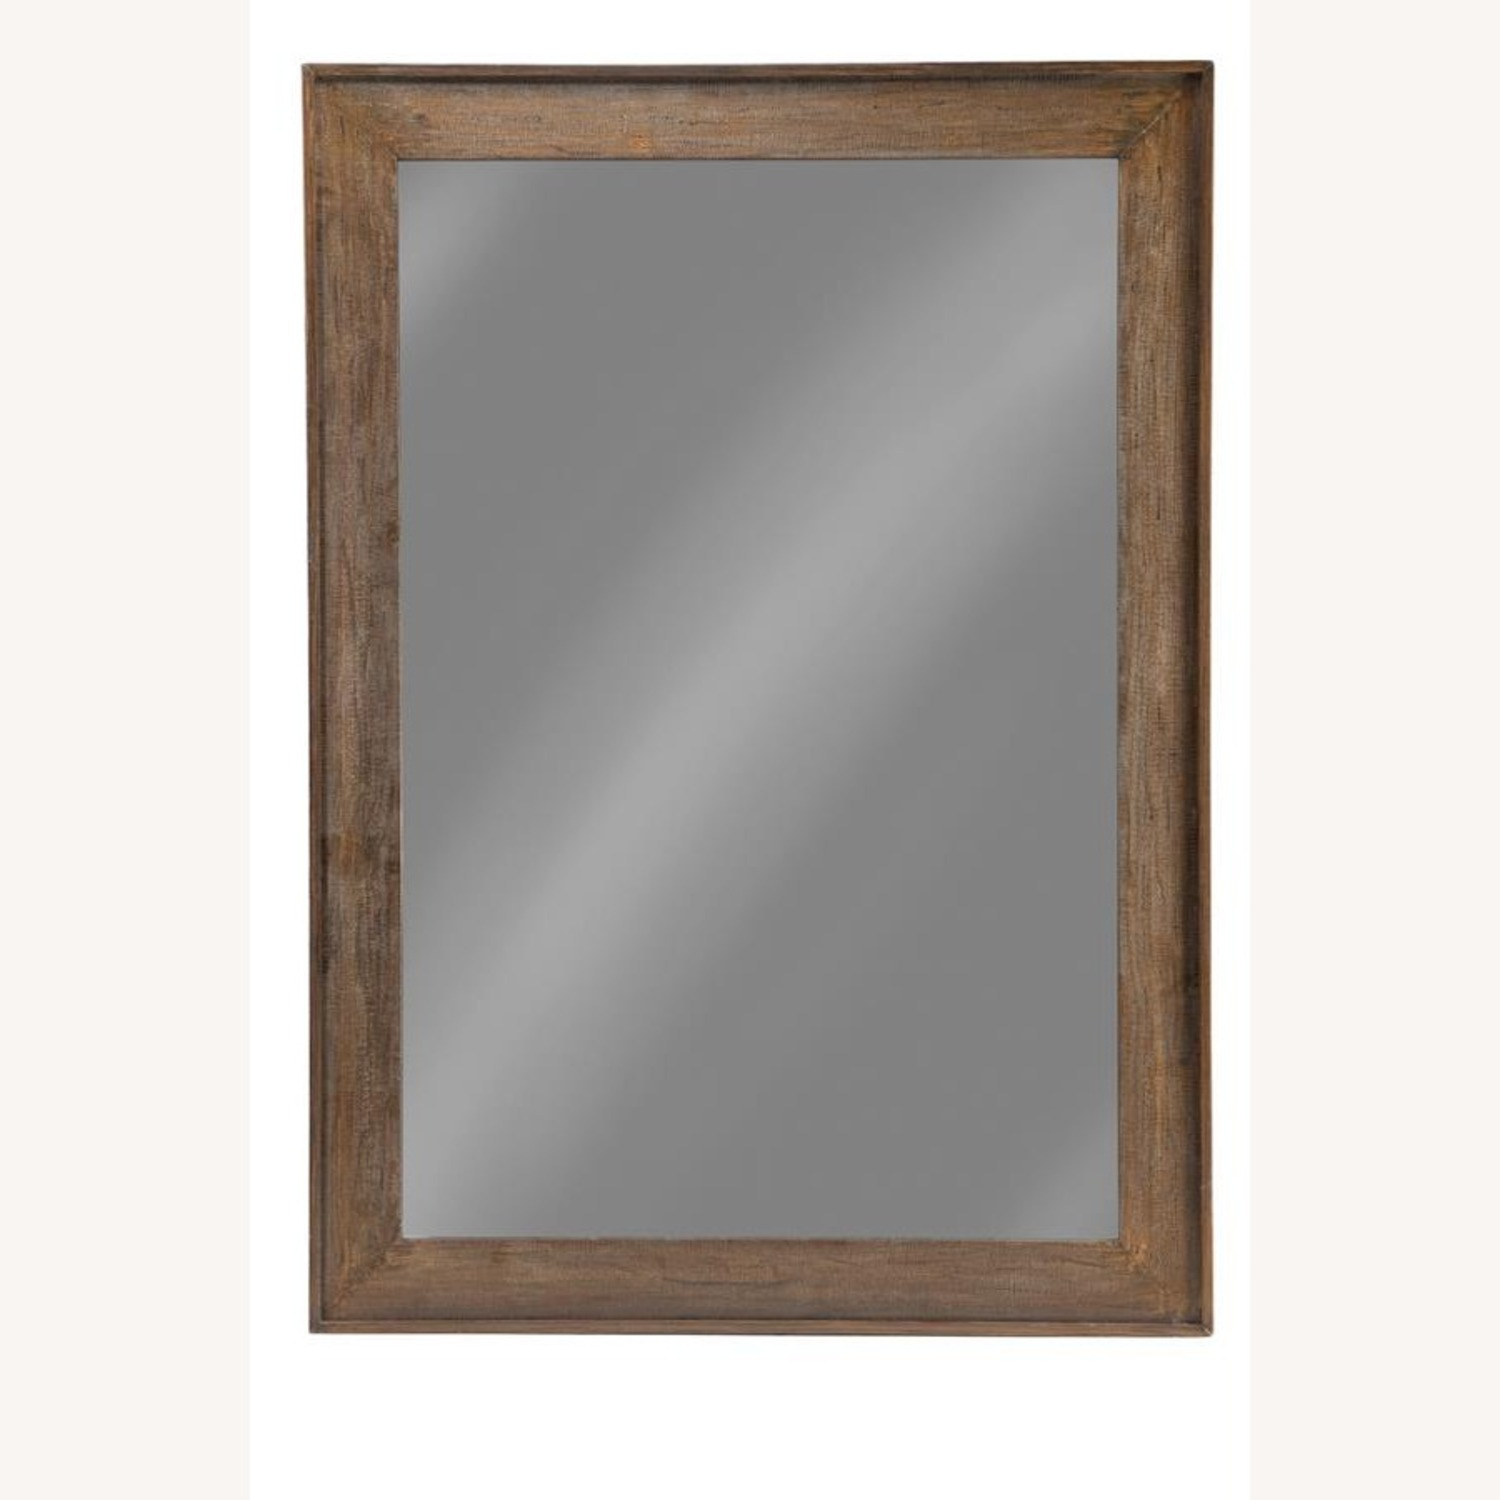 Mirror W/ Contoured Pine Frame & Distressed Look - image-0